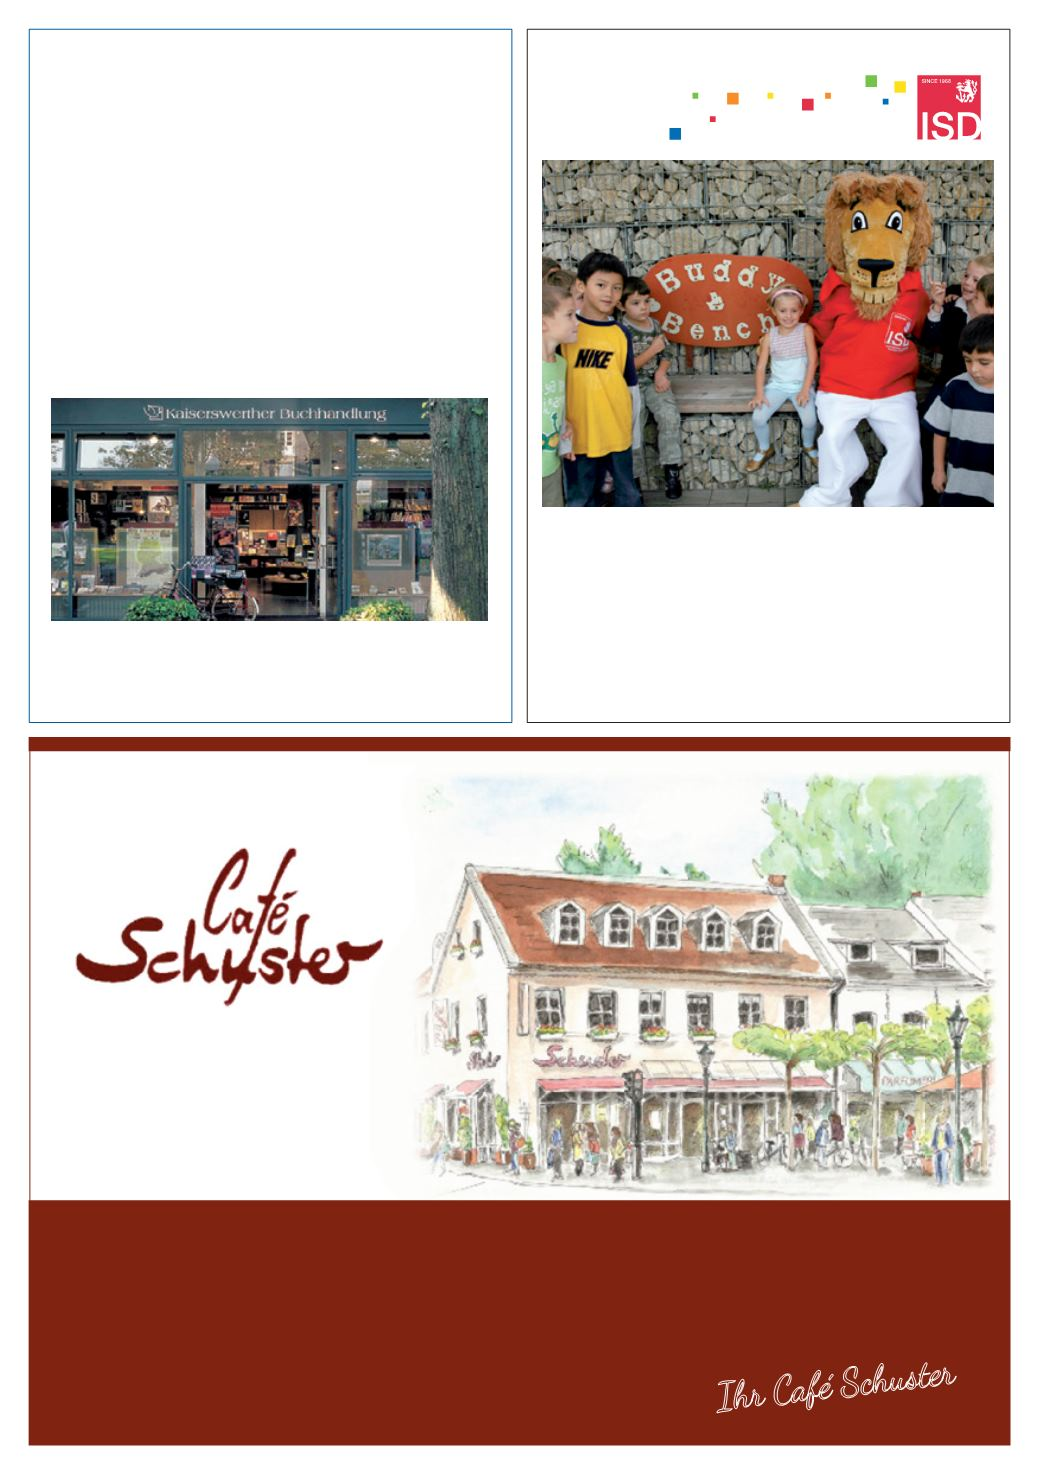 cafe schuster kaiserswerth